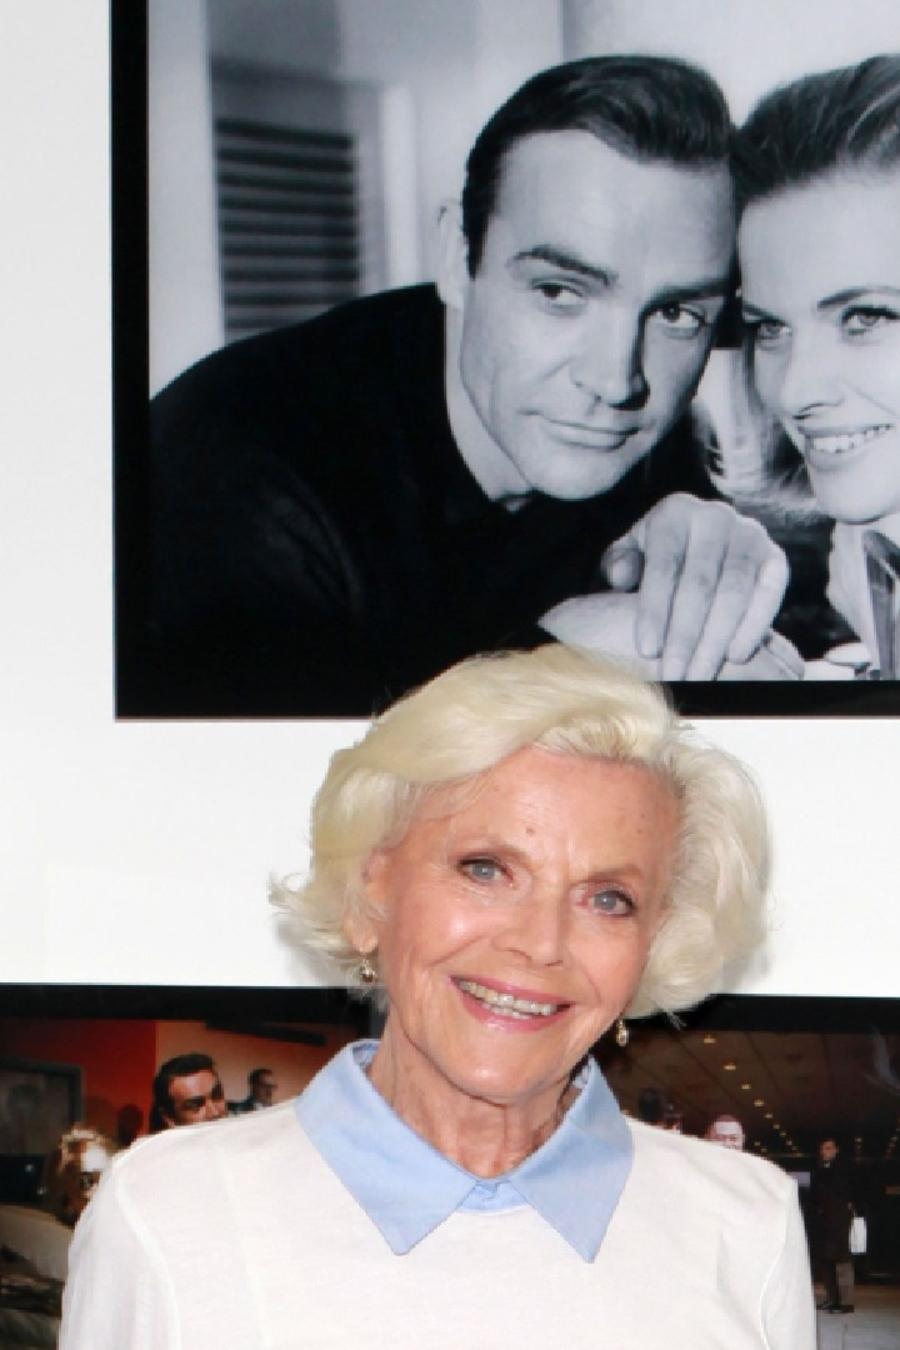 Muere Honor Blackman, la 'chica Bond' Pussy Galore